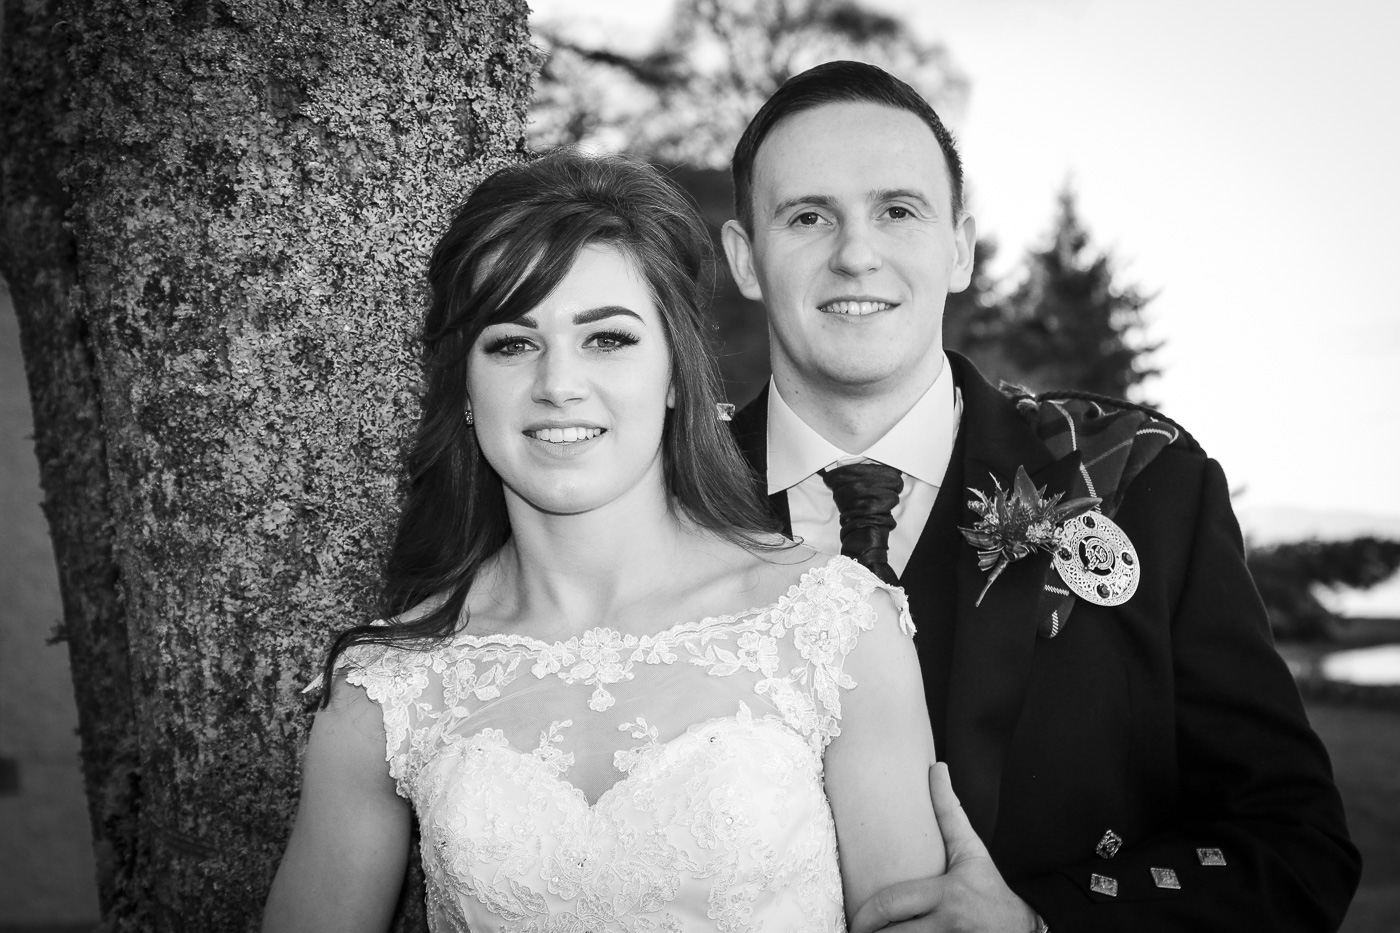 wedding-photography-at-bunchrew-house-inverness-9137-2